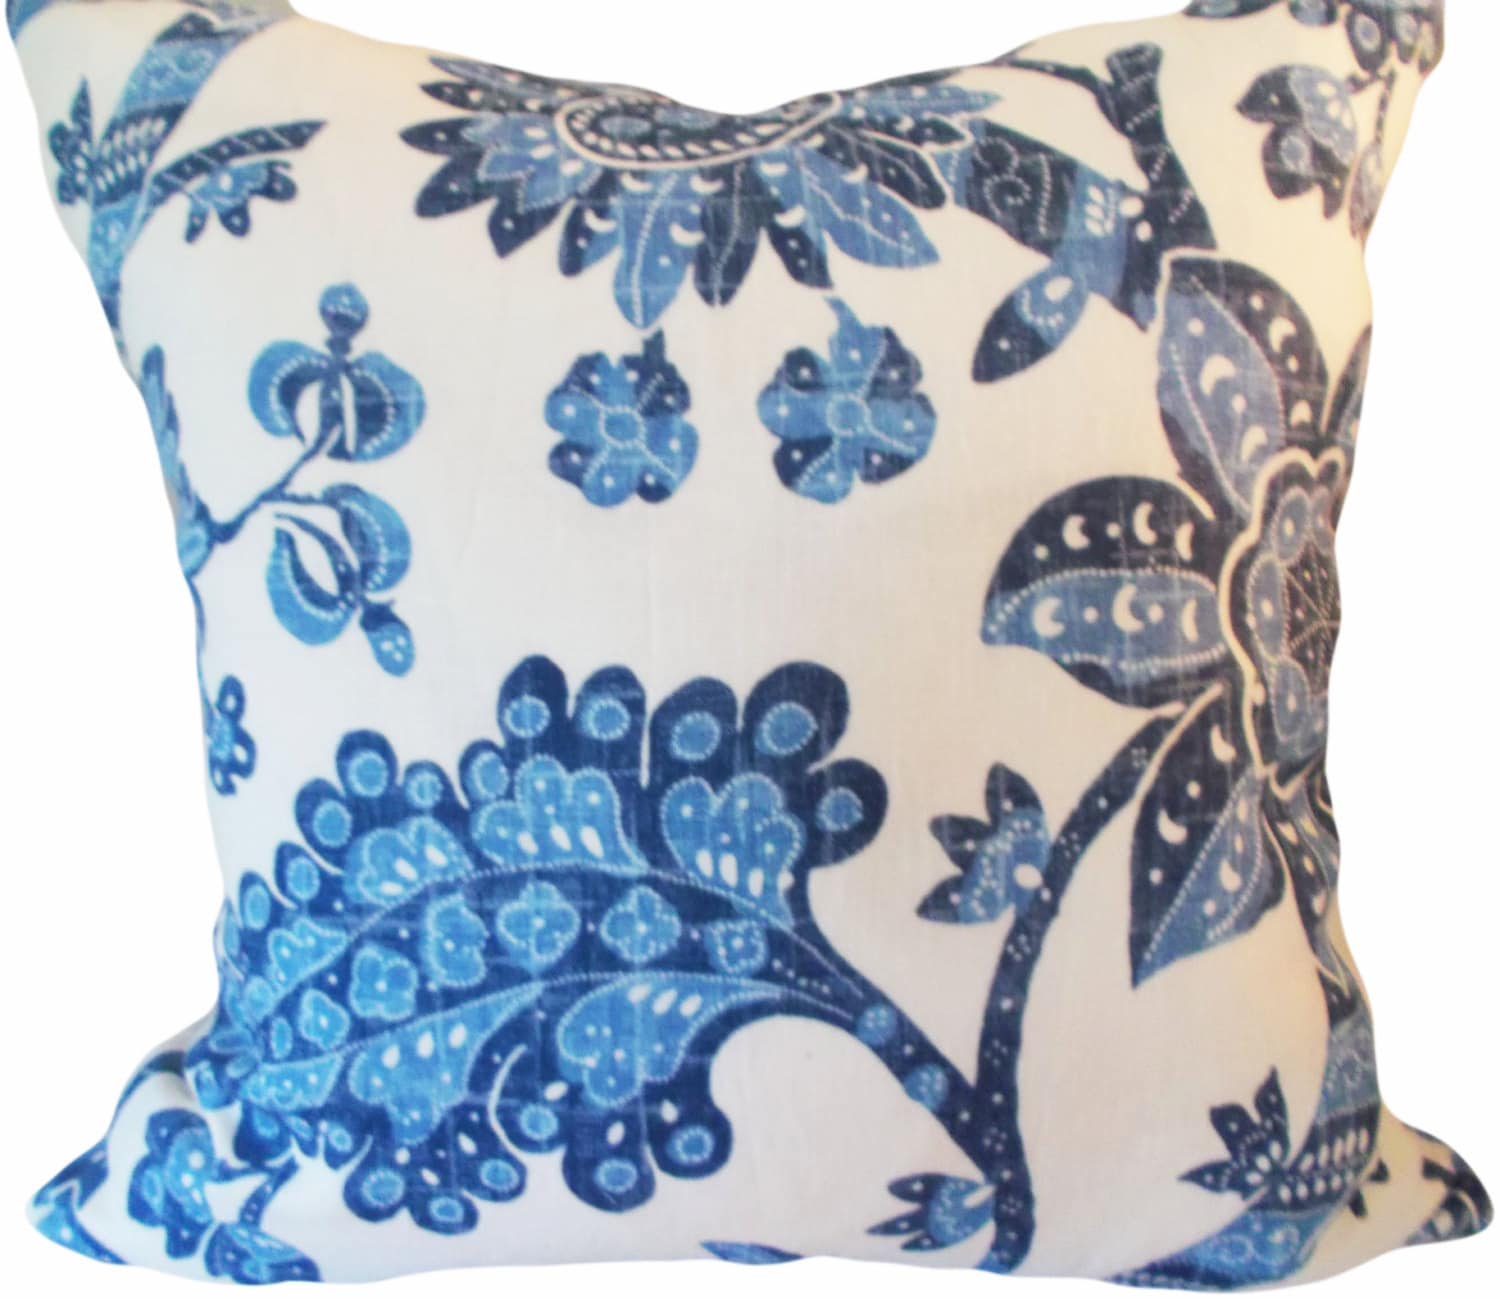 Waverly Decorative Throw Pillows : Blue Floral Vintage Waverly Decorative Pillow Cover Throw